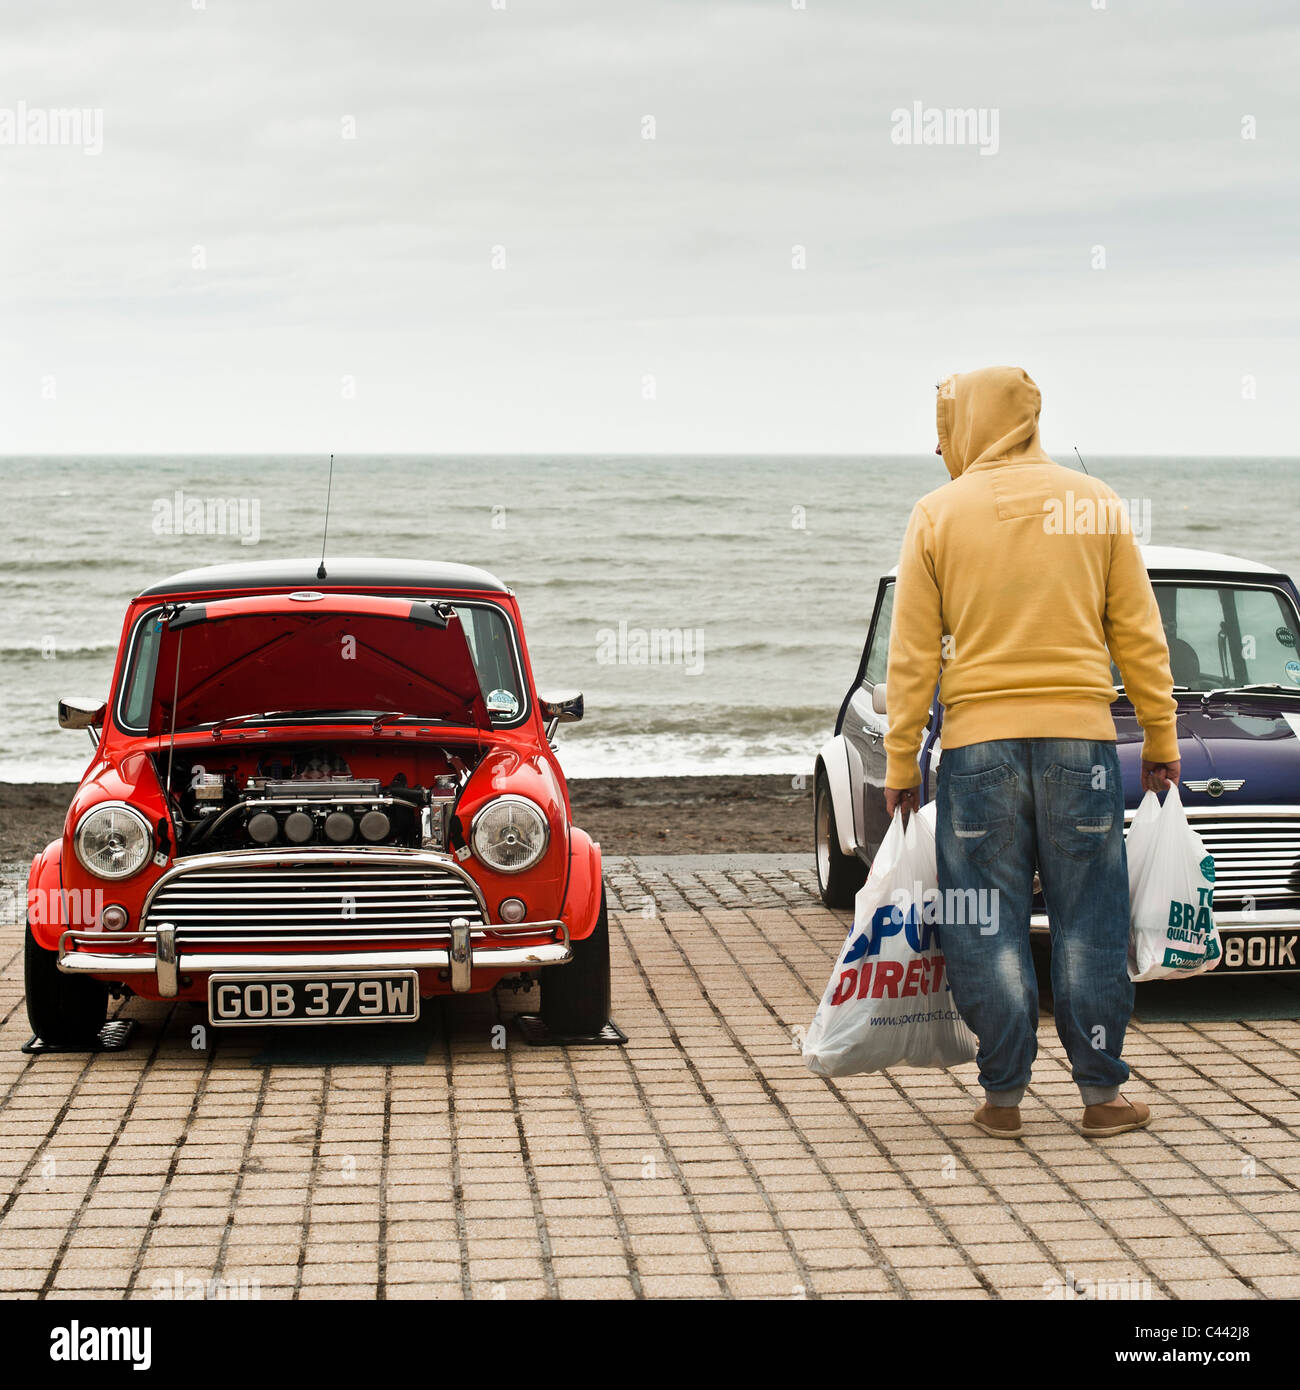 Whitsun Bank Holiday Weekend - Mini car owner rally on the promenade Aberystwyth Wales UK - Stock Image